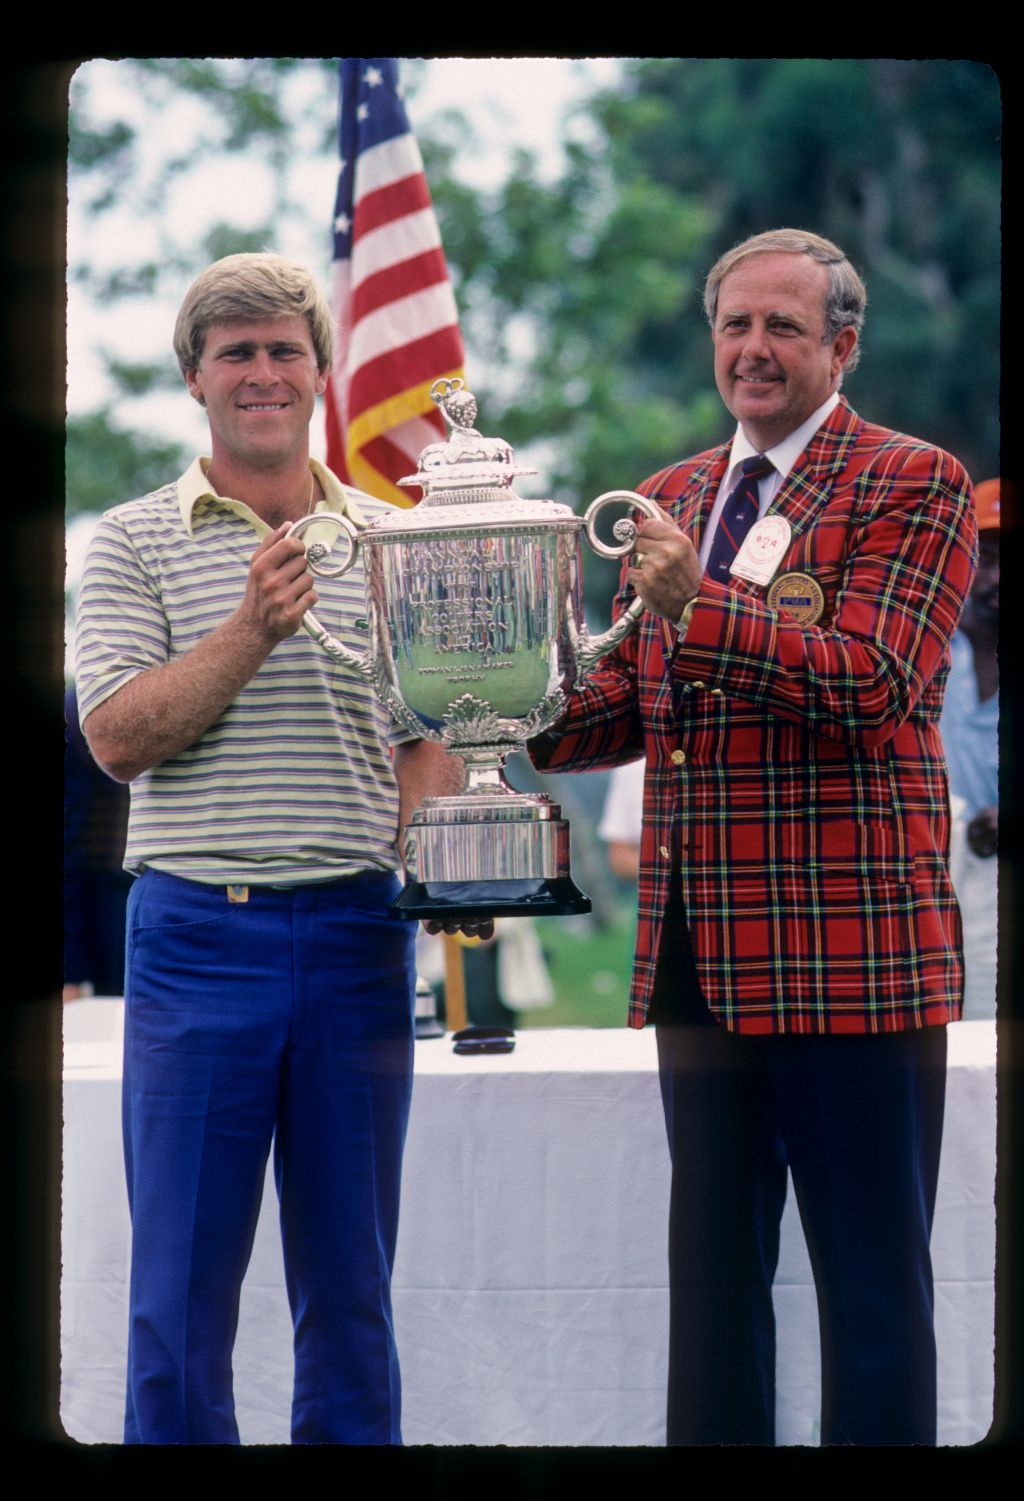 Hal Sutton receiving the trophy after winning the 1983 USPGA